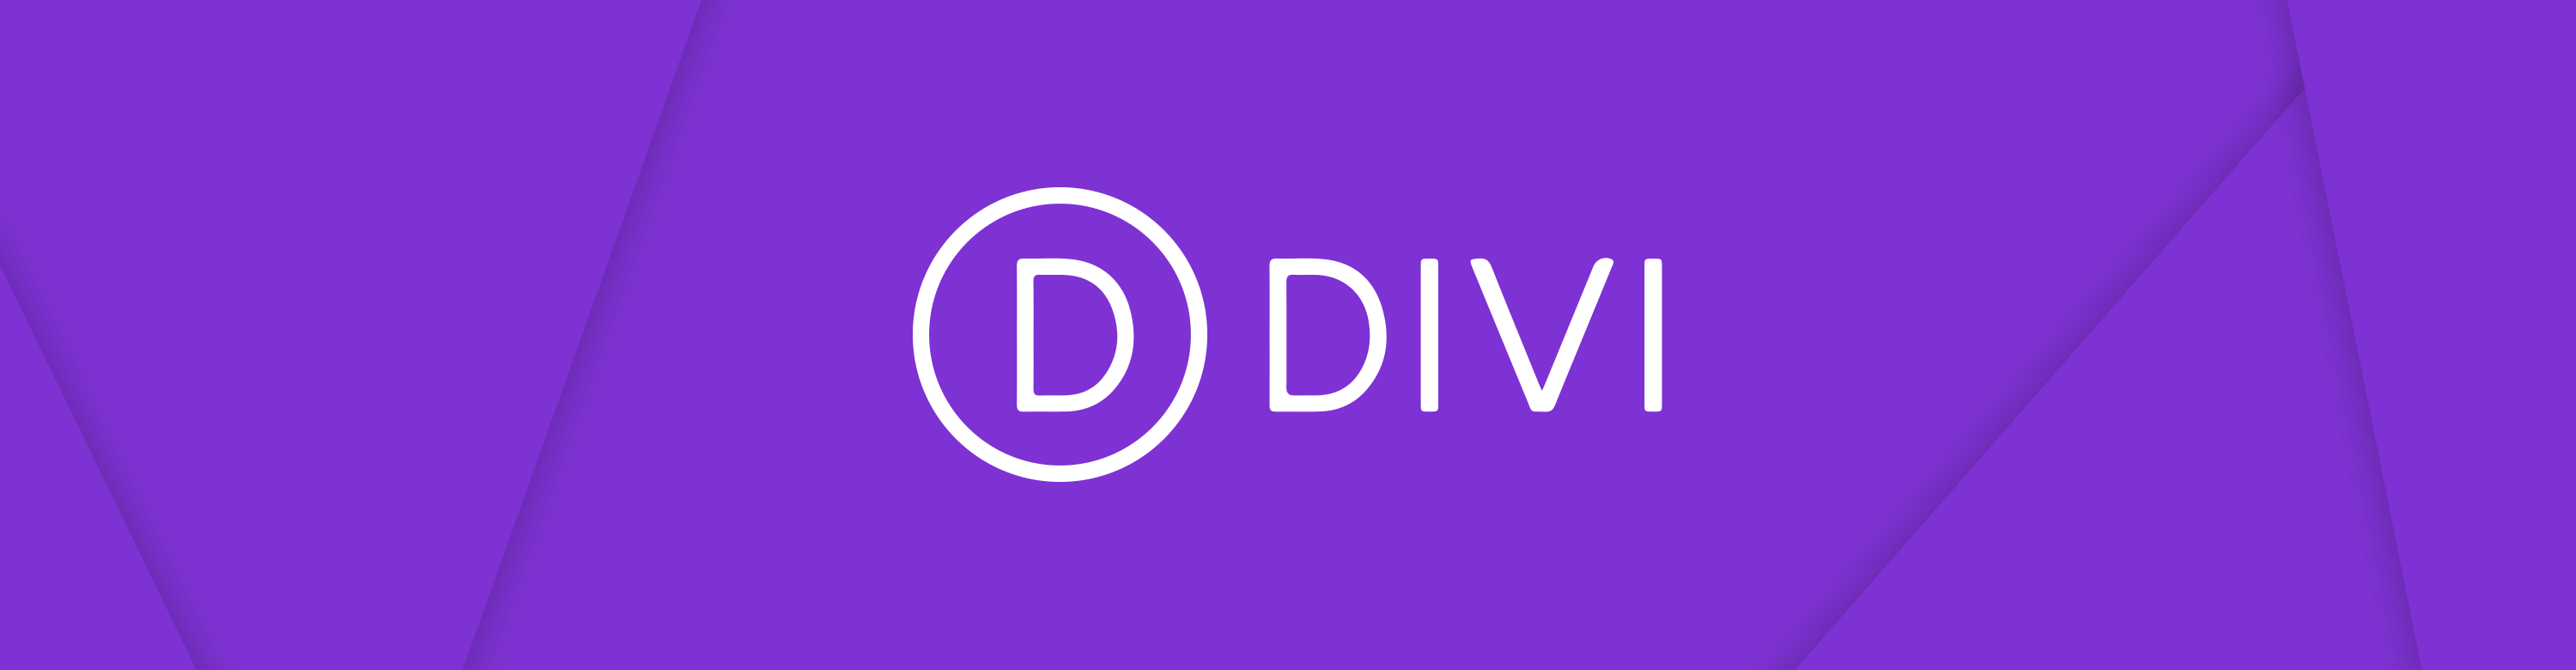 Everything you need to know to get started with Divi.